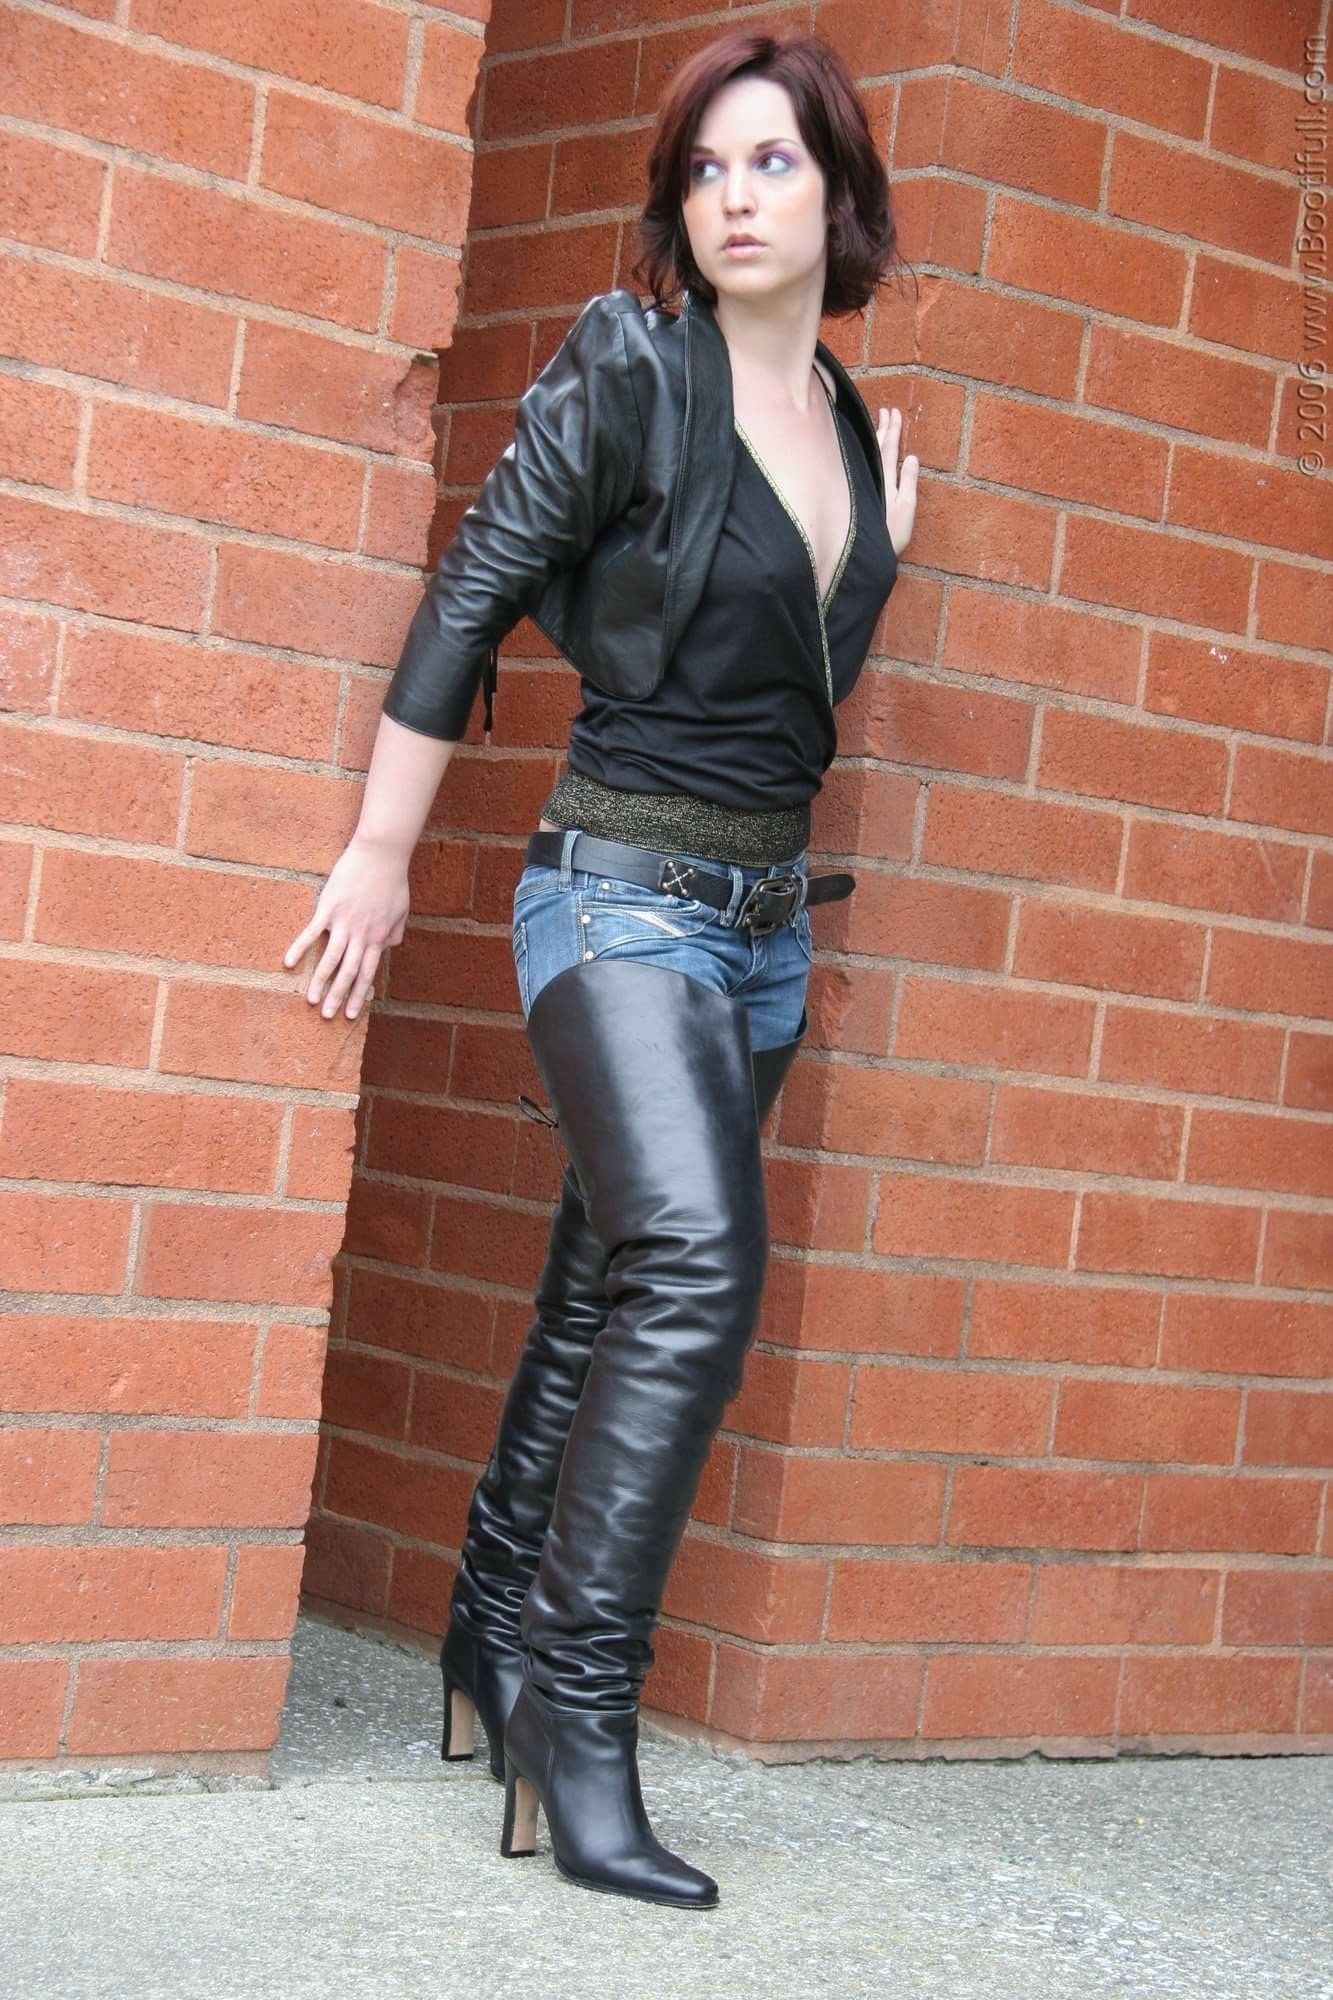 Leather crotch boot sex